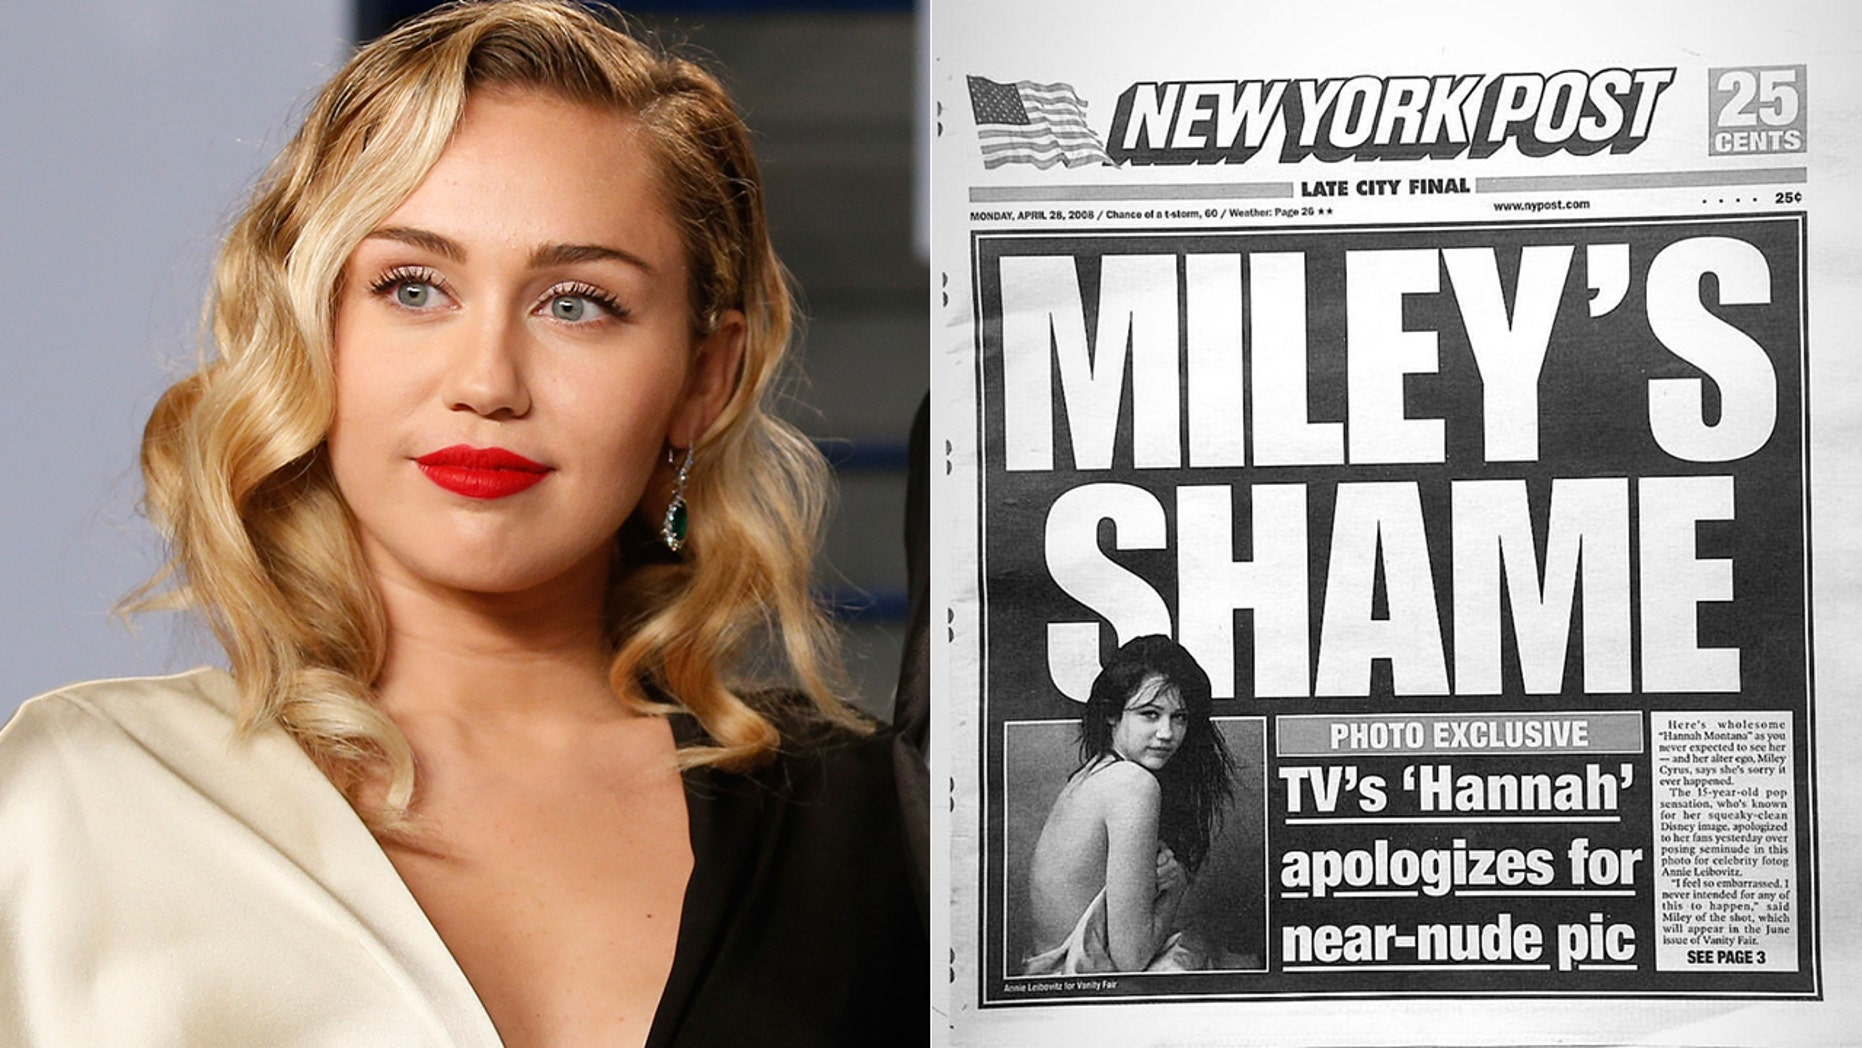 Miley Cyrus explained why she retracted her apology for her Vanity Fair shoot in 2008.